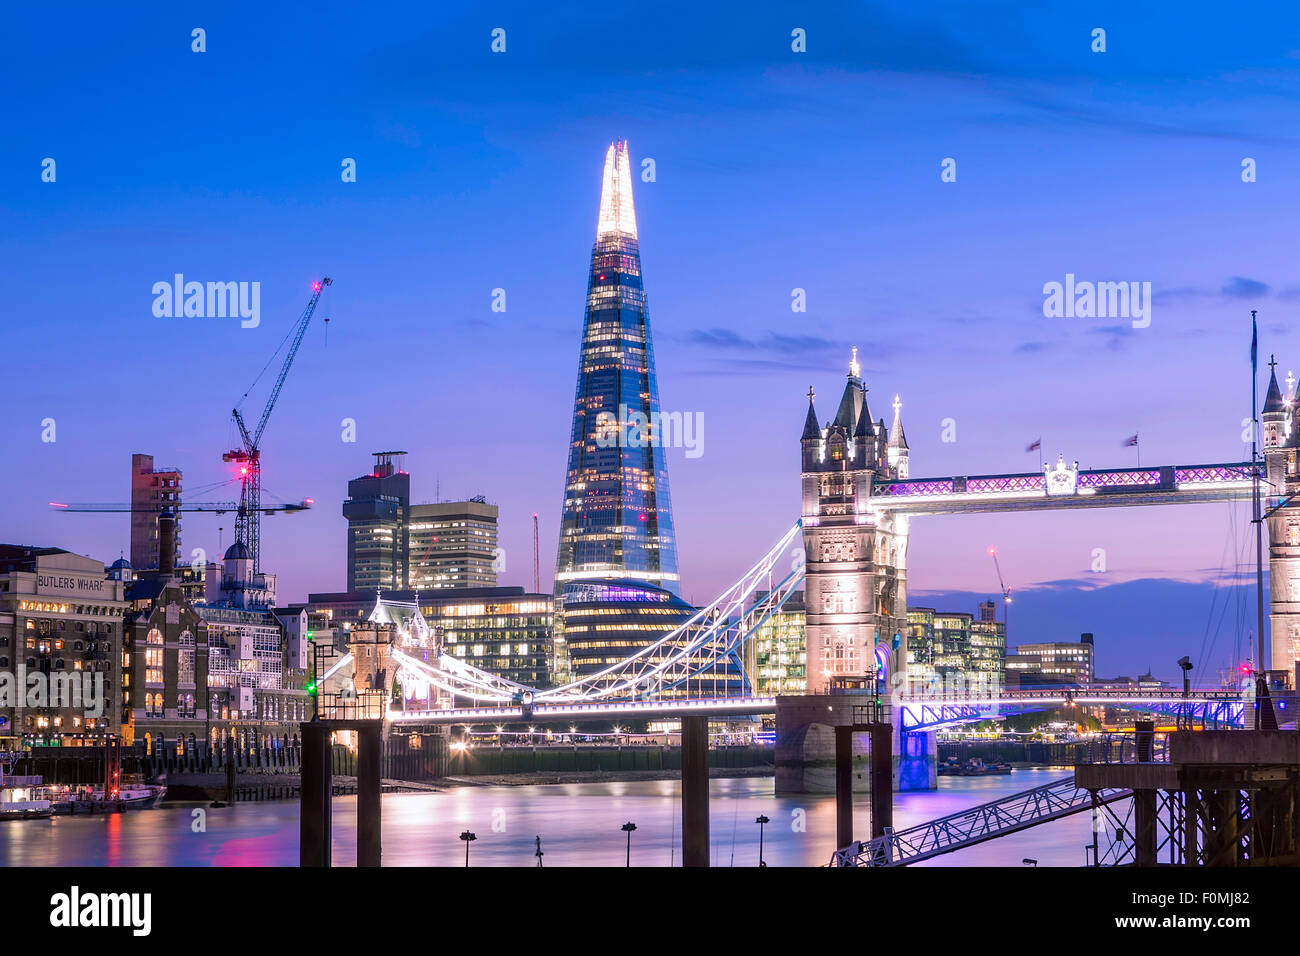 Tower Bridge, Thames River and the Shard building in London, England, UK - Stock Image